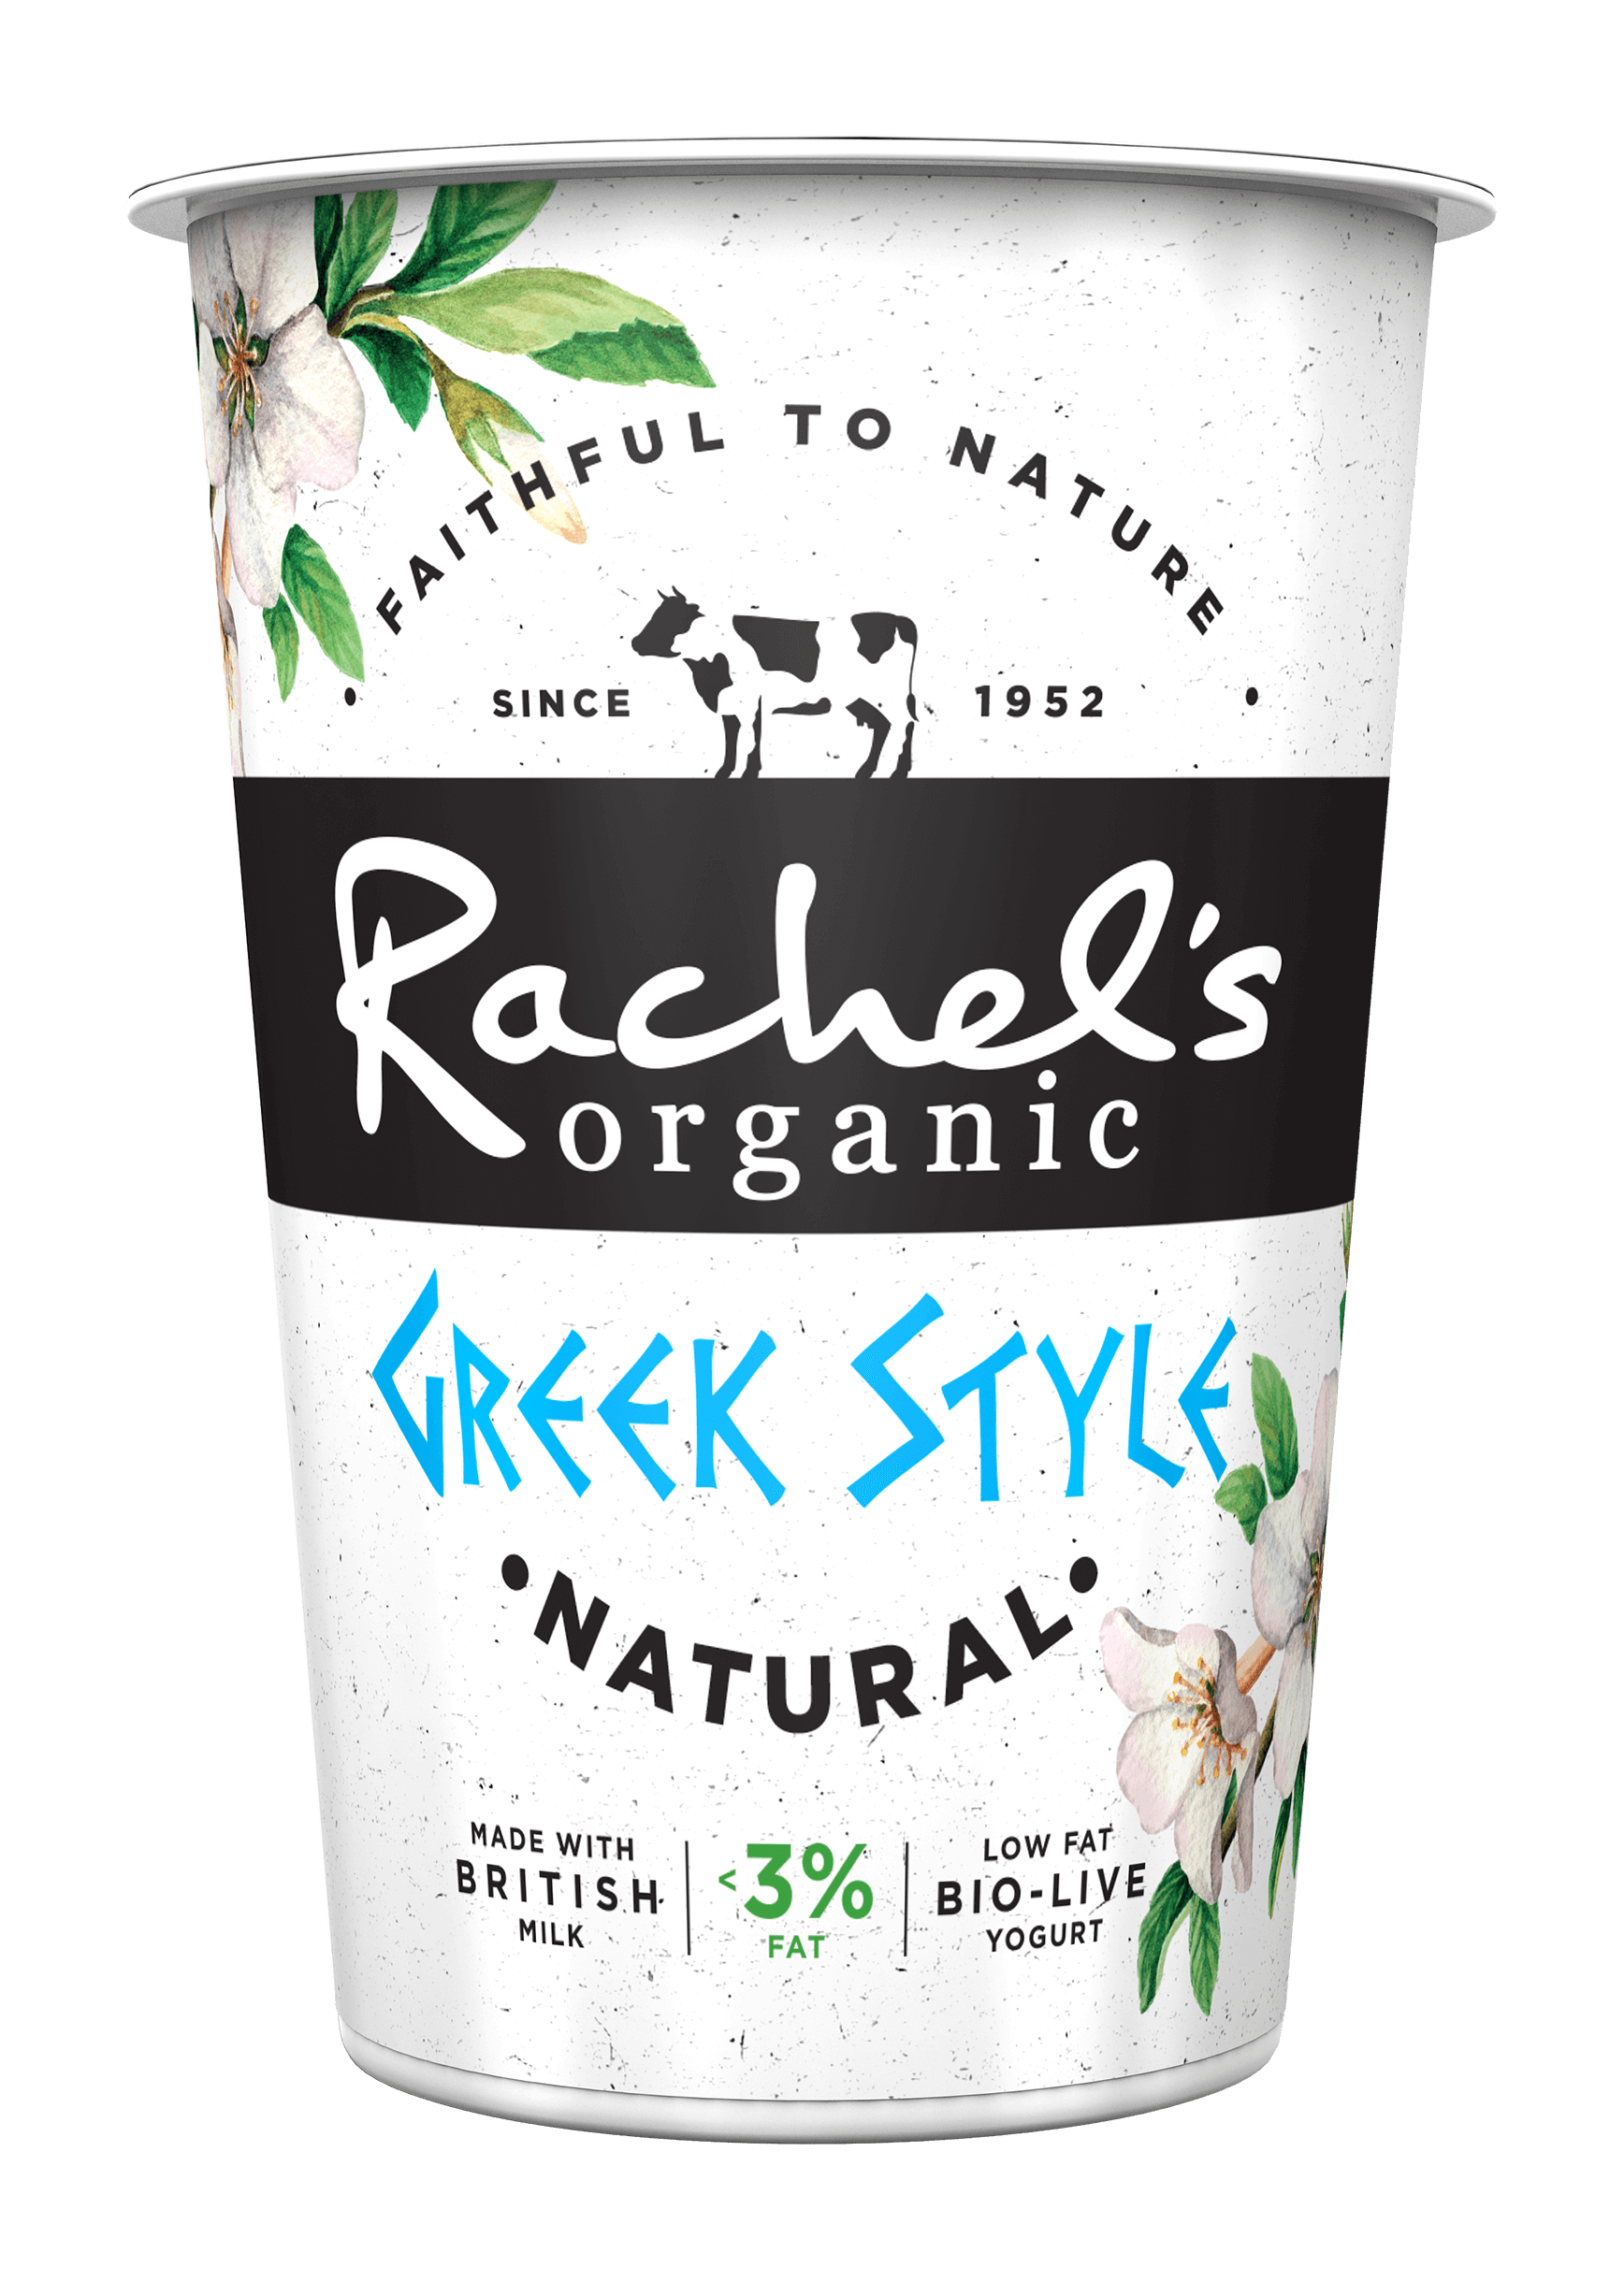 https://www.rachelsorganic.co.uk/wp-content/uploads/2019/12/5021638100820-3D-RACHELS-450G-POT-GREEK-STYLE-NATURAL-LOW-FAT.png